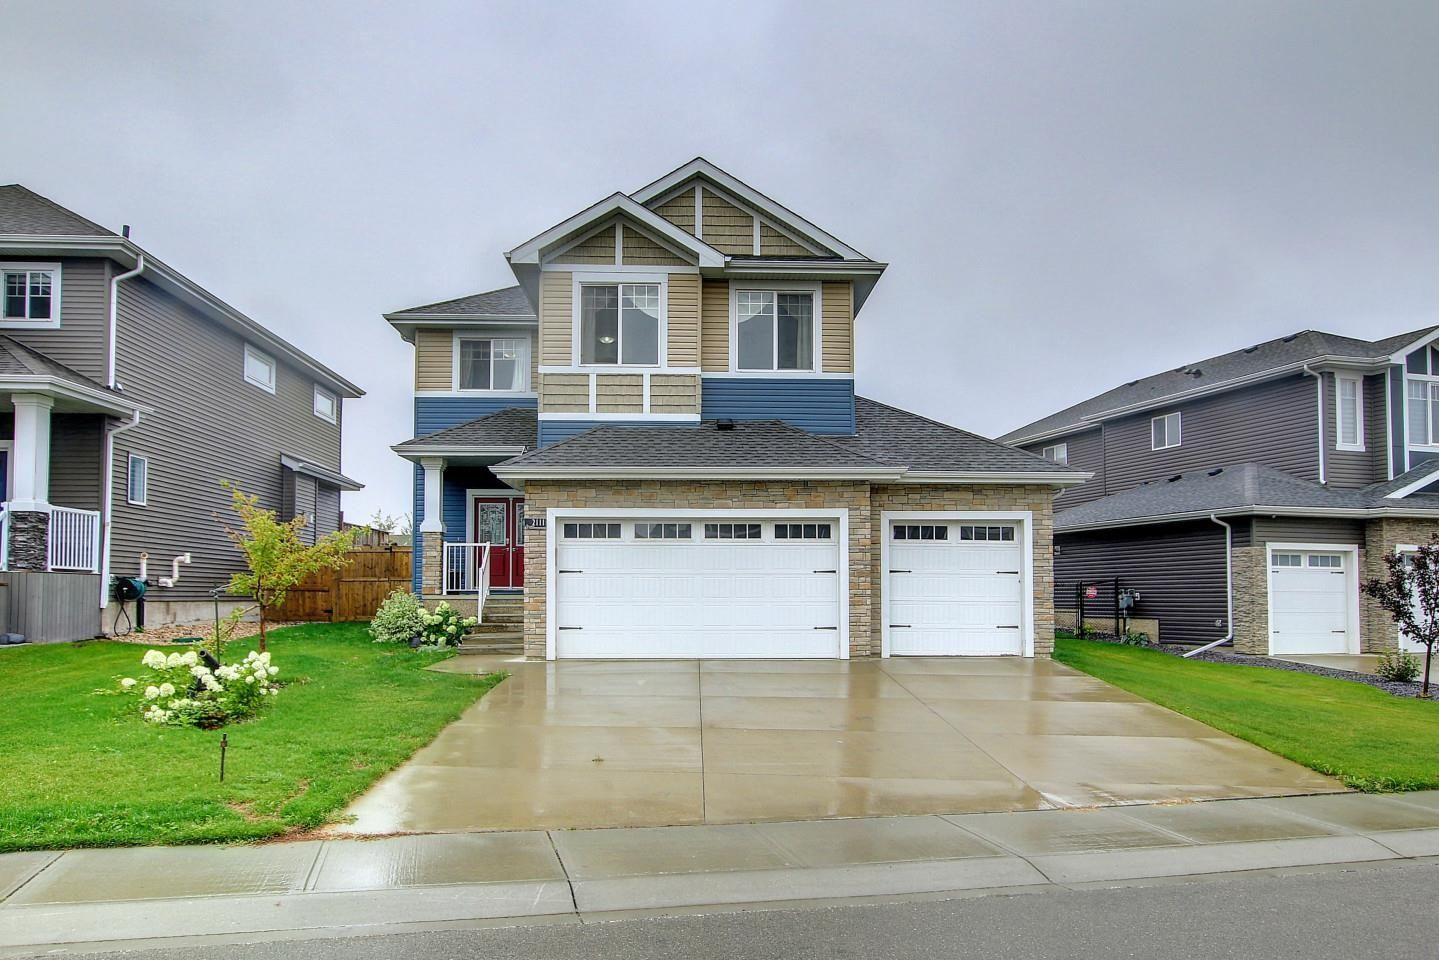 Main Photo: 2111 BLUE JAY Point in Edmonton: Zone 59 House for sale : MLS®# E4261289